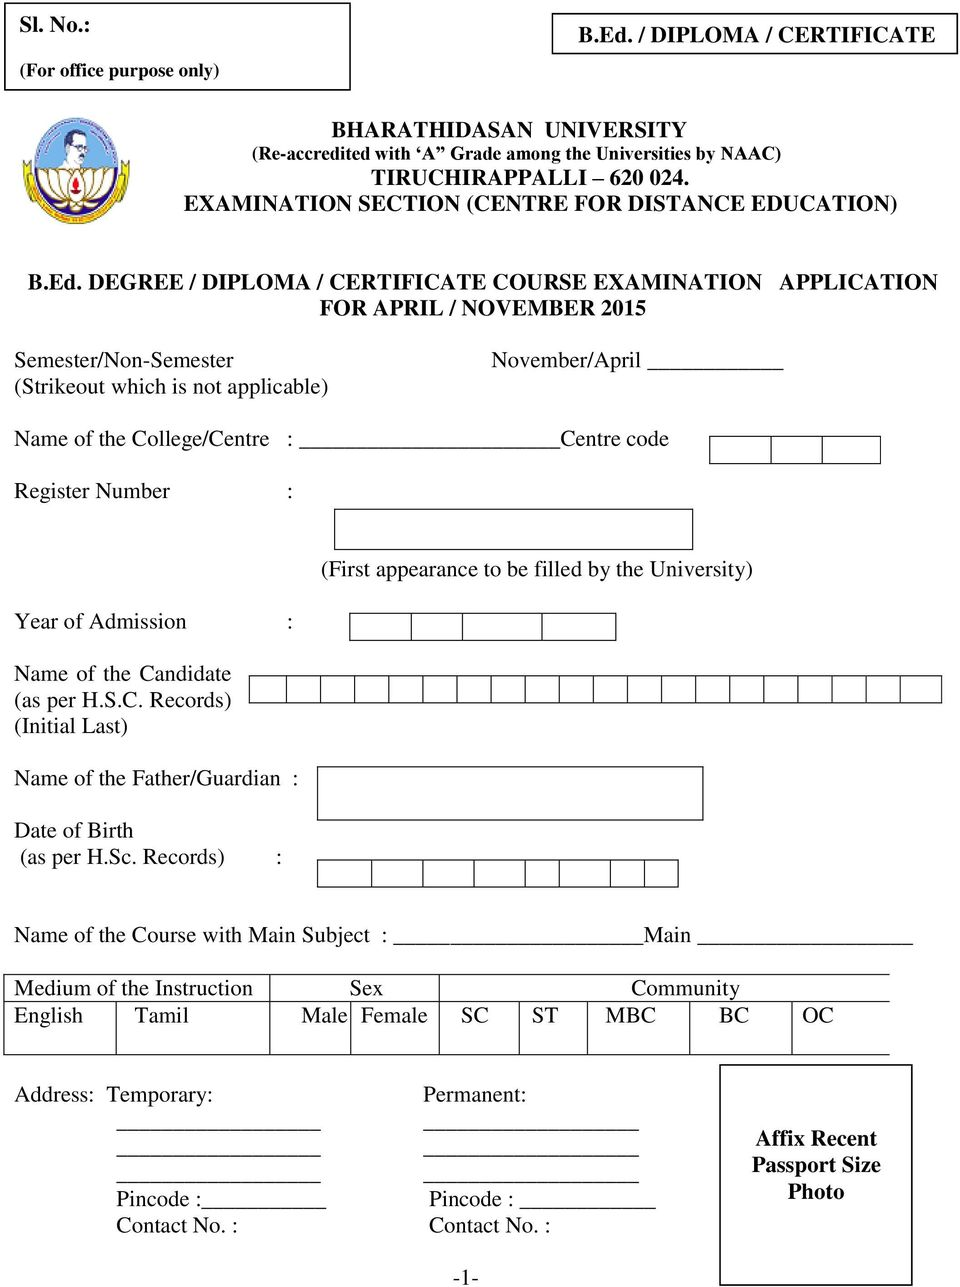 DEGREE / DIPLOMA / CERTIFICATE COURSE EXAMINATION APPLICATION FOR APRIL / NOVEMBER 2015 Semester/Non-Semester (Strikeout which is not applicable) November/April Name of the College/Centre : Centre